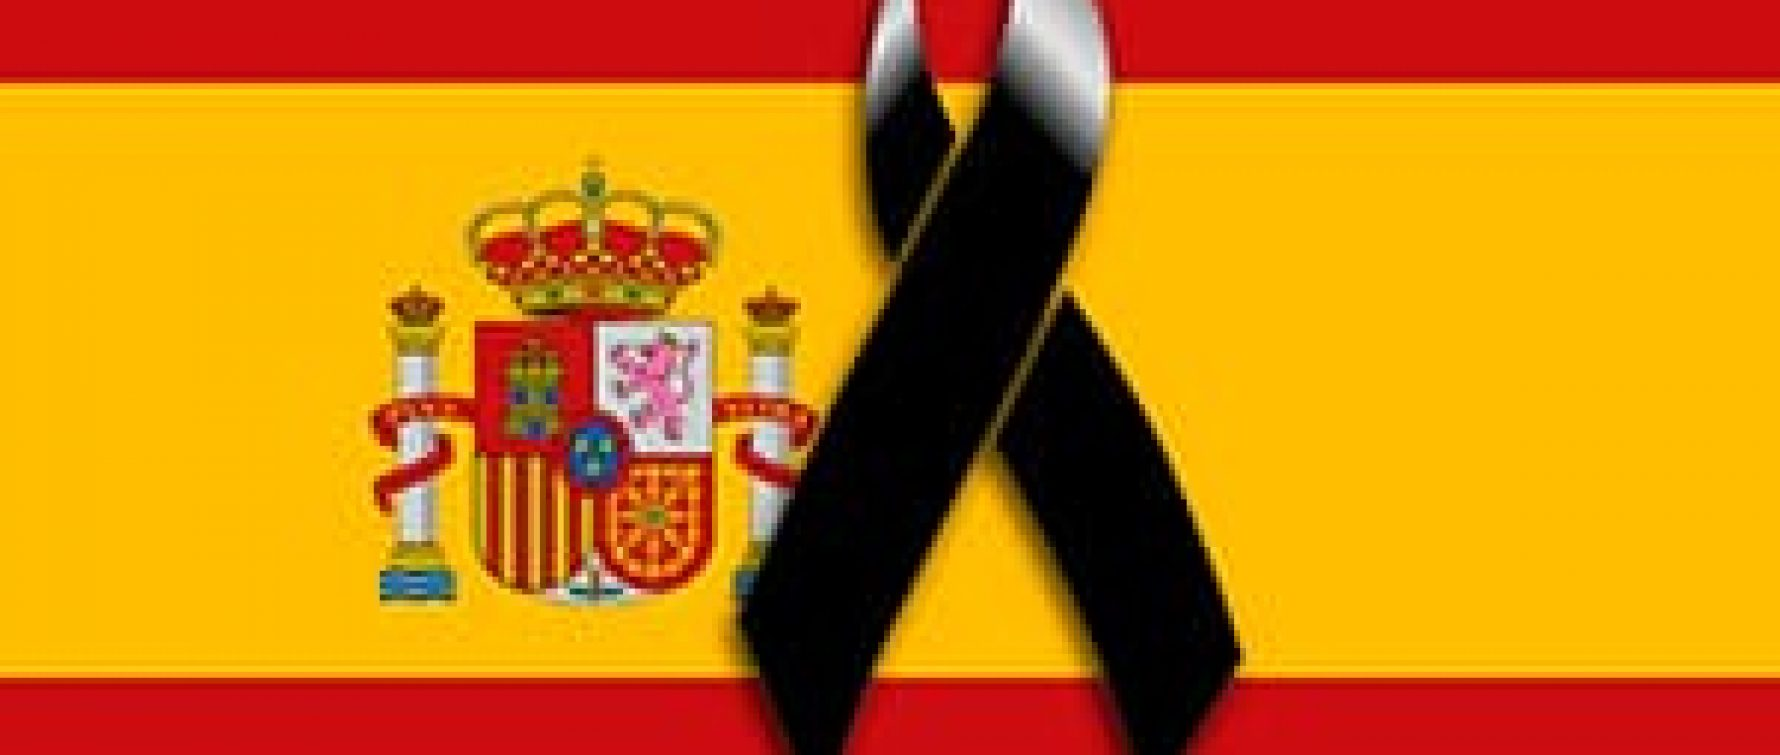 IDC-CDI shares the pain of and supports all the victims of yesterday's terrorist attack in Barcelona